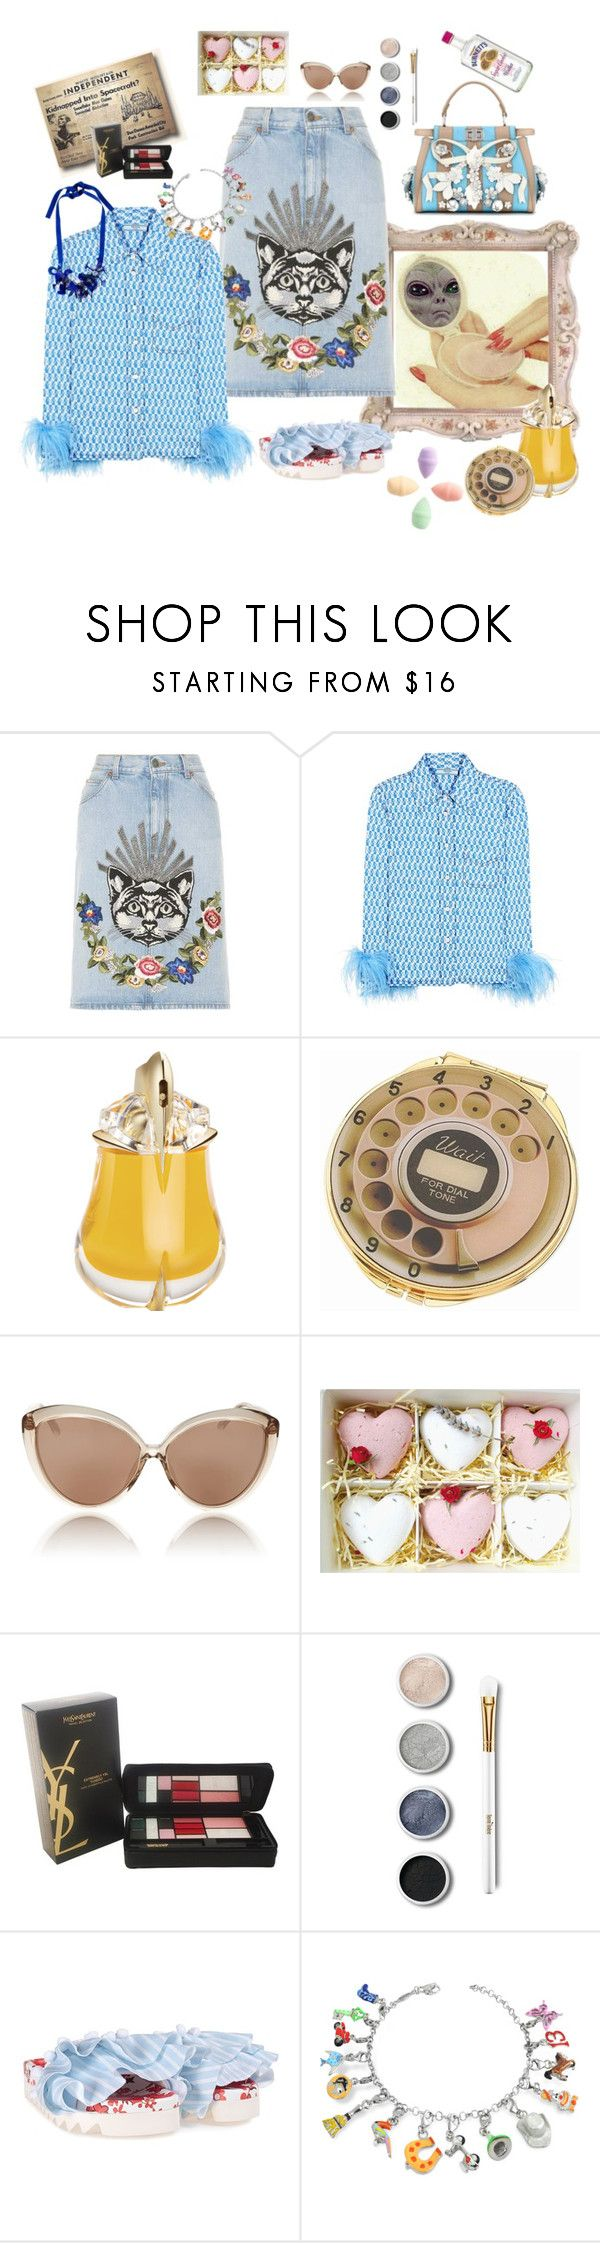 """""""Invasion- put your pretty on 💄"""" by juliabachmann ❤ liked on Polyvore featuring Gucci, Prada, Thierry Mugler, Kate Spade, Linda Farrow, Yves Saint Laurent, Terre Mère, Joshua's and Tedora"""